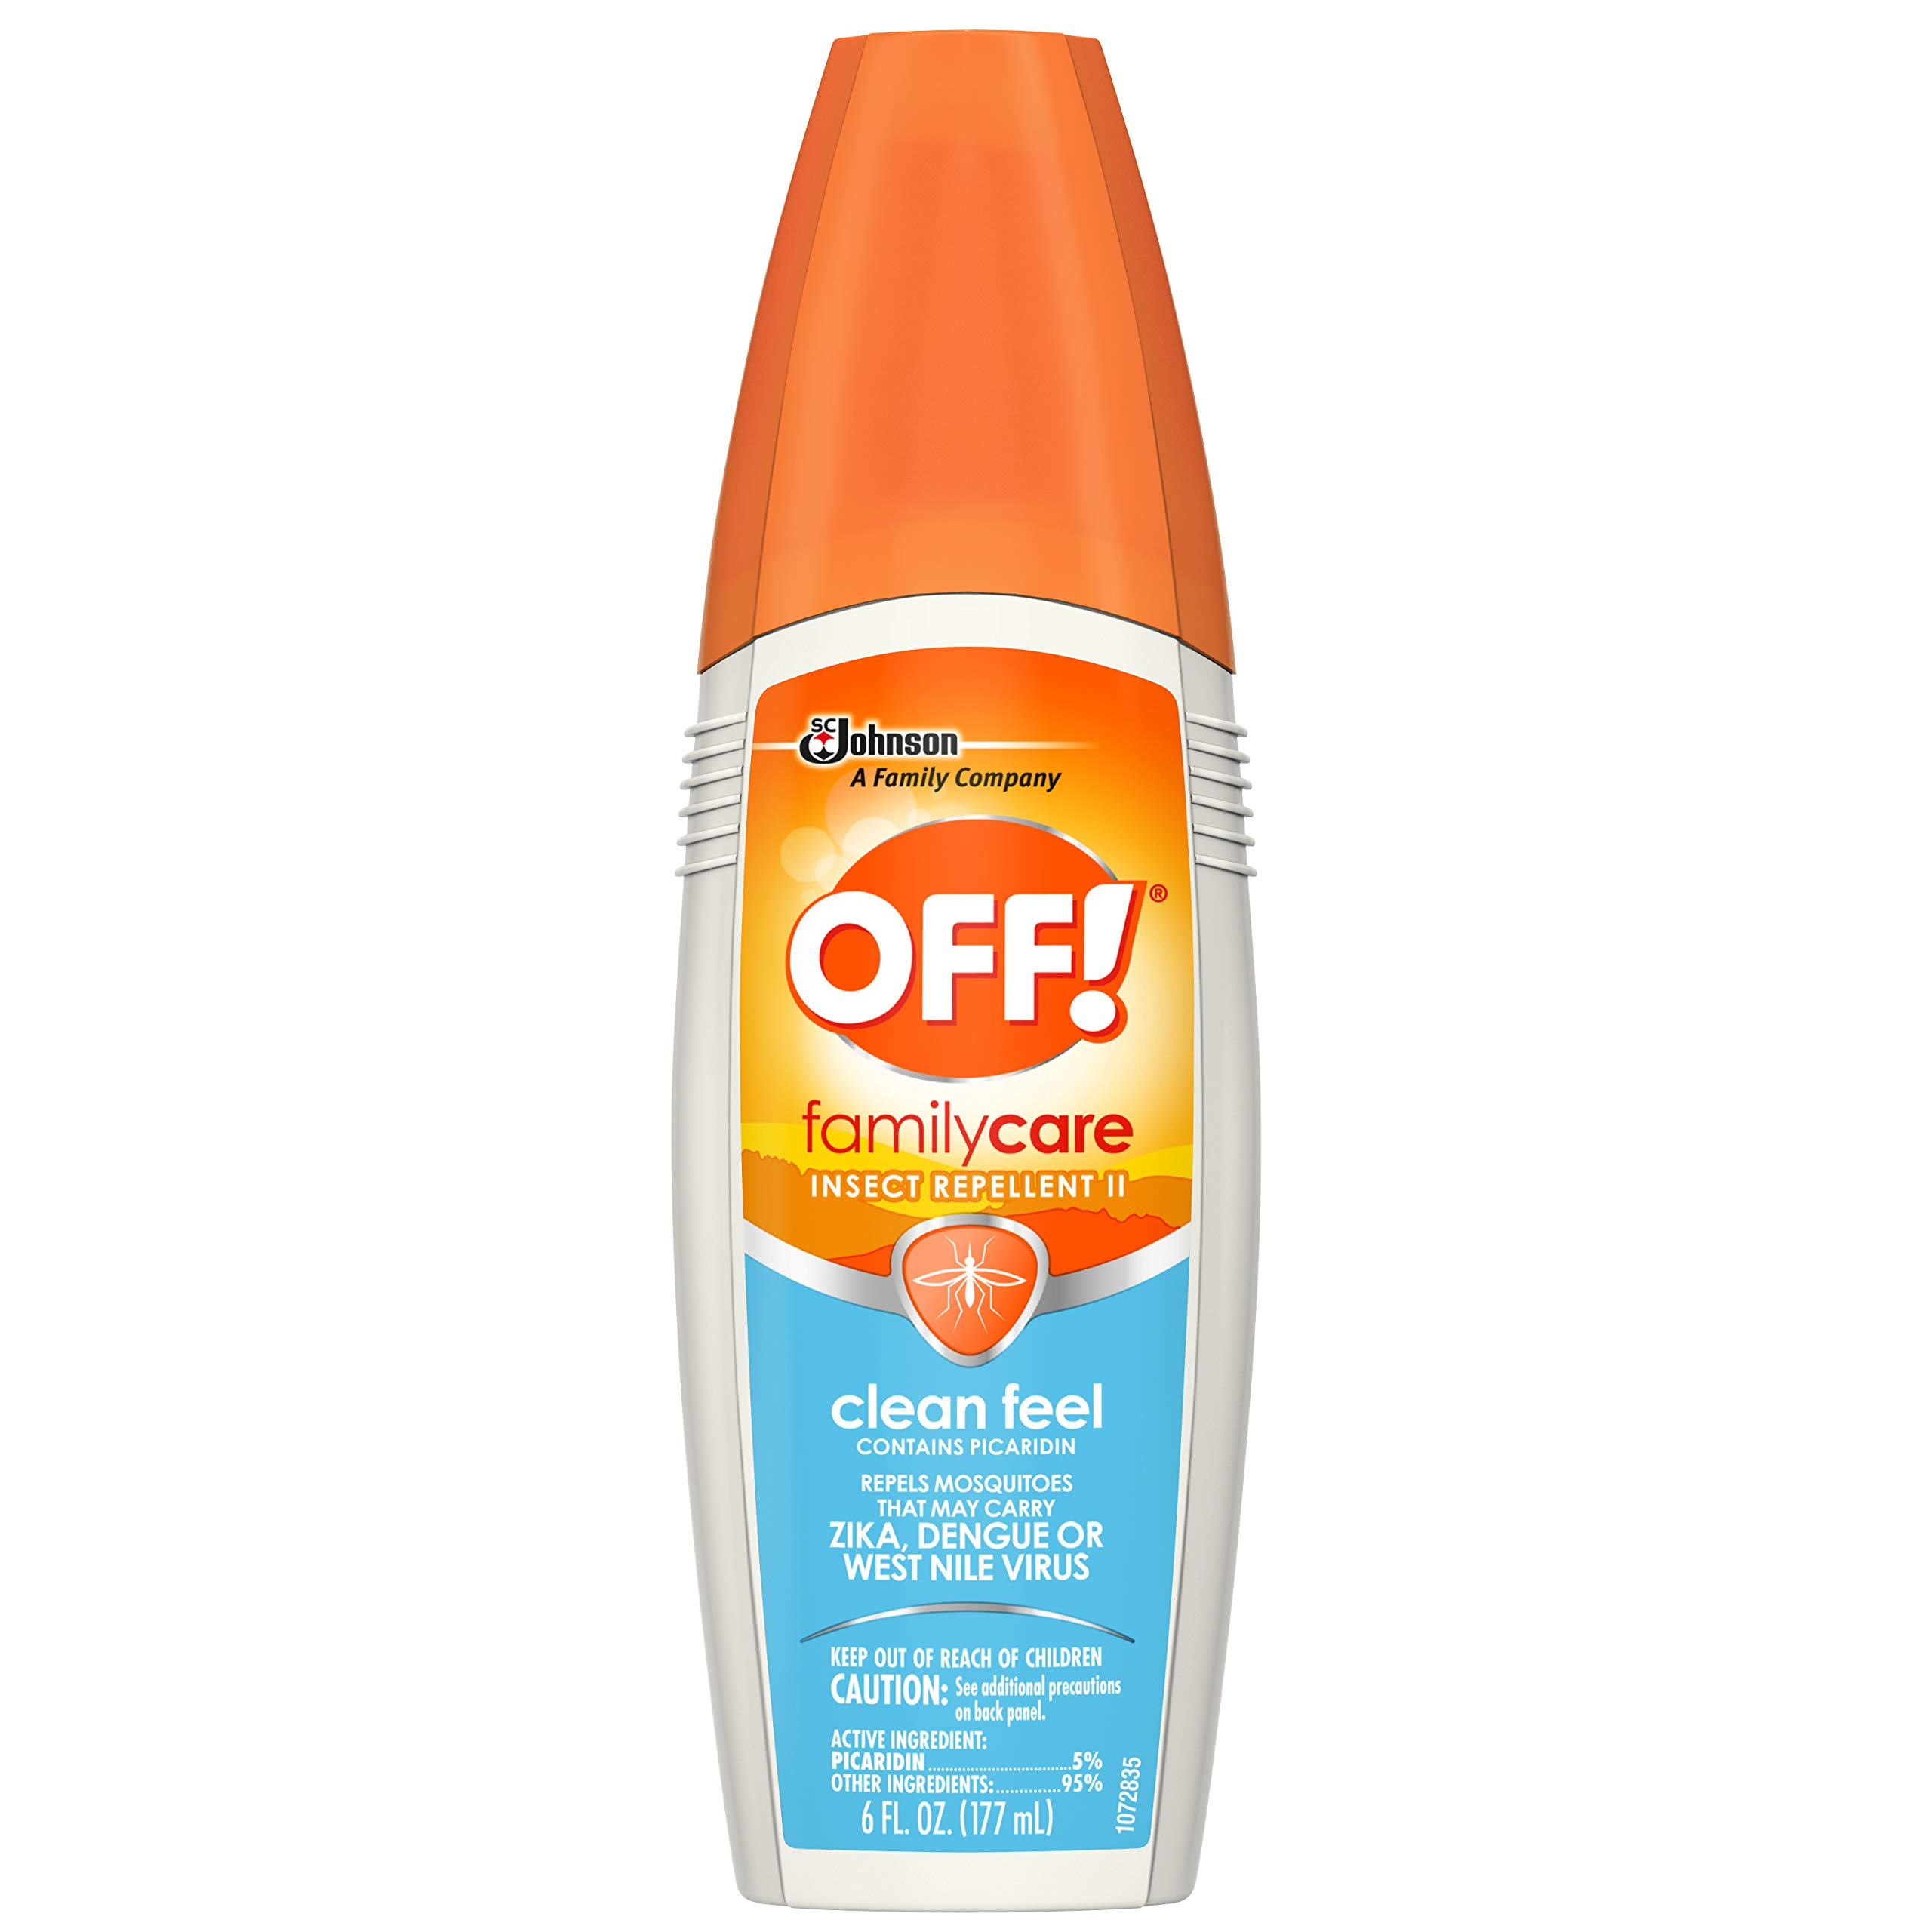 OFF! FamilyCare Insect Repellent II, Clean Feel, 6 oz. (Pack of 12)